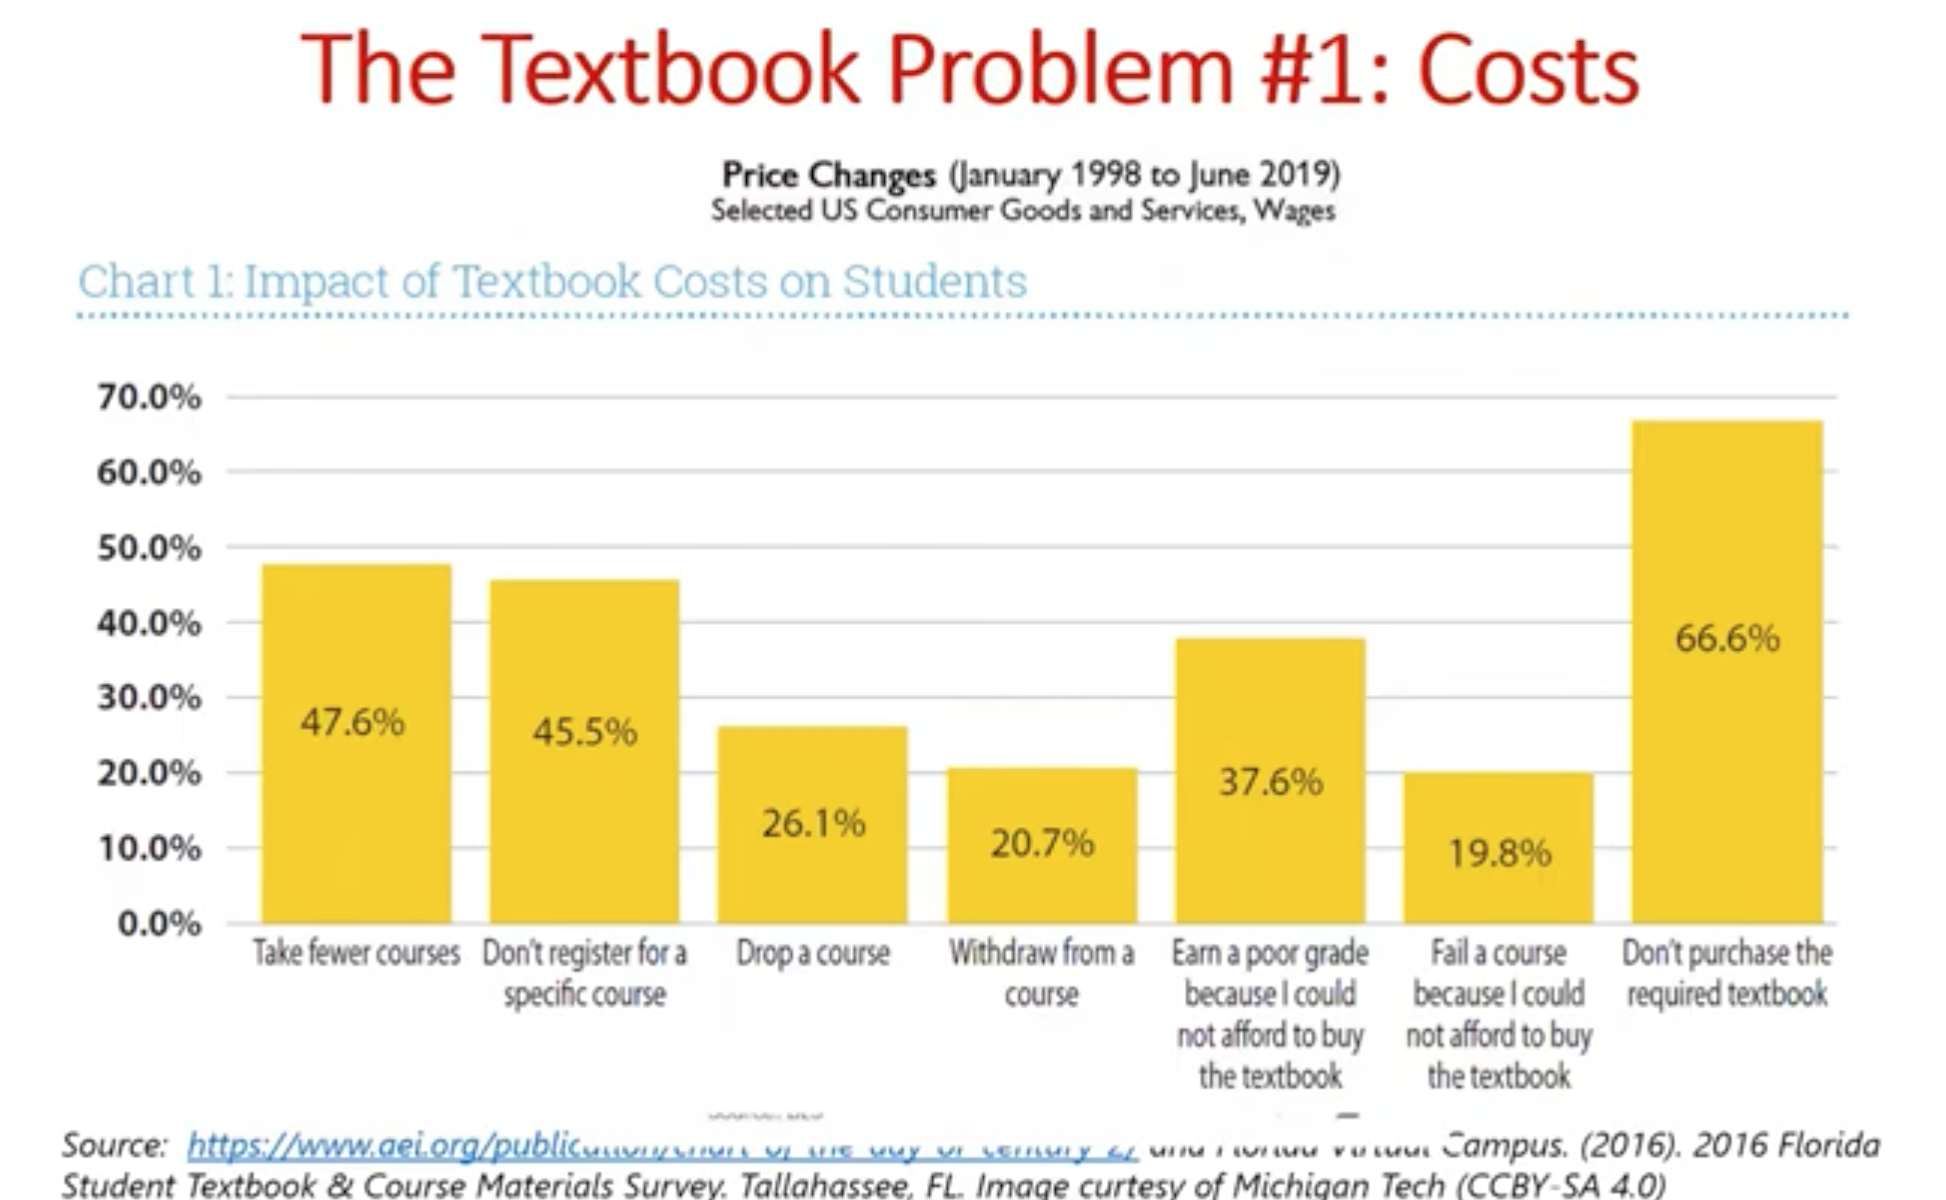 chart of percentage of students who are affected by textbook costs